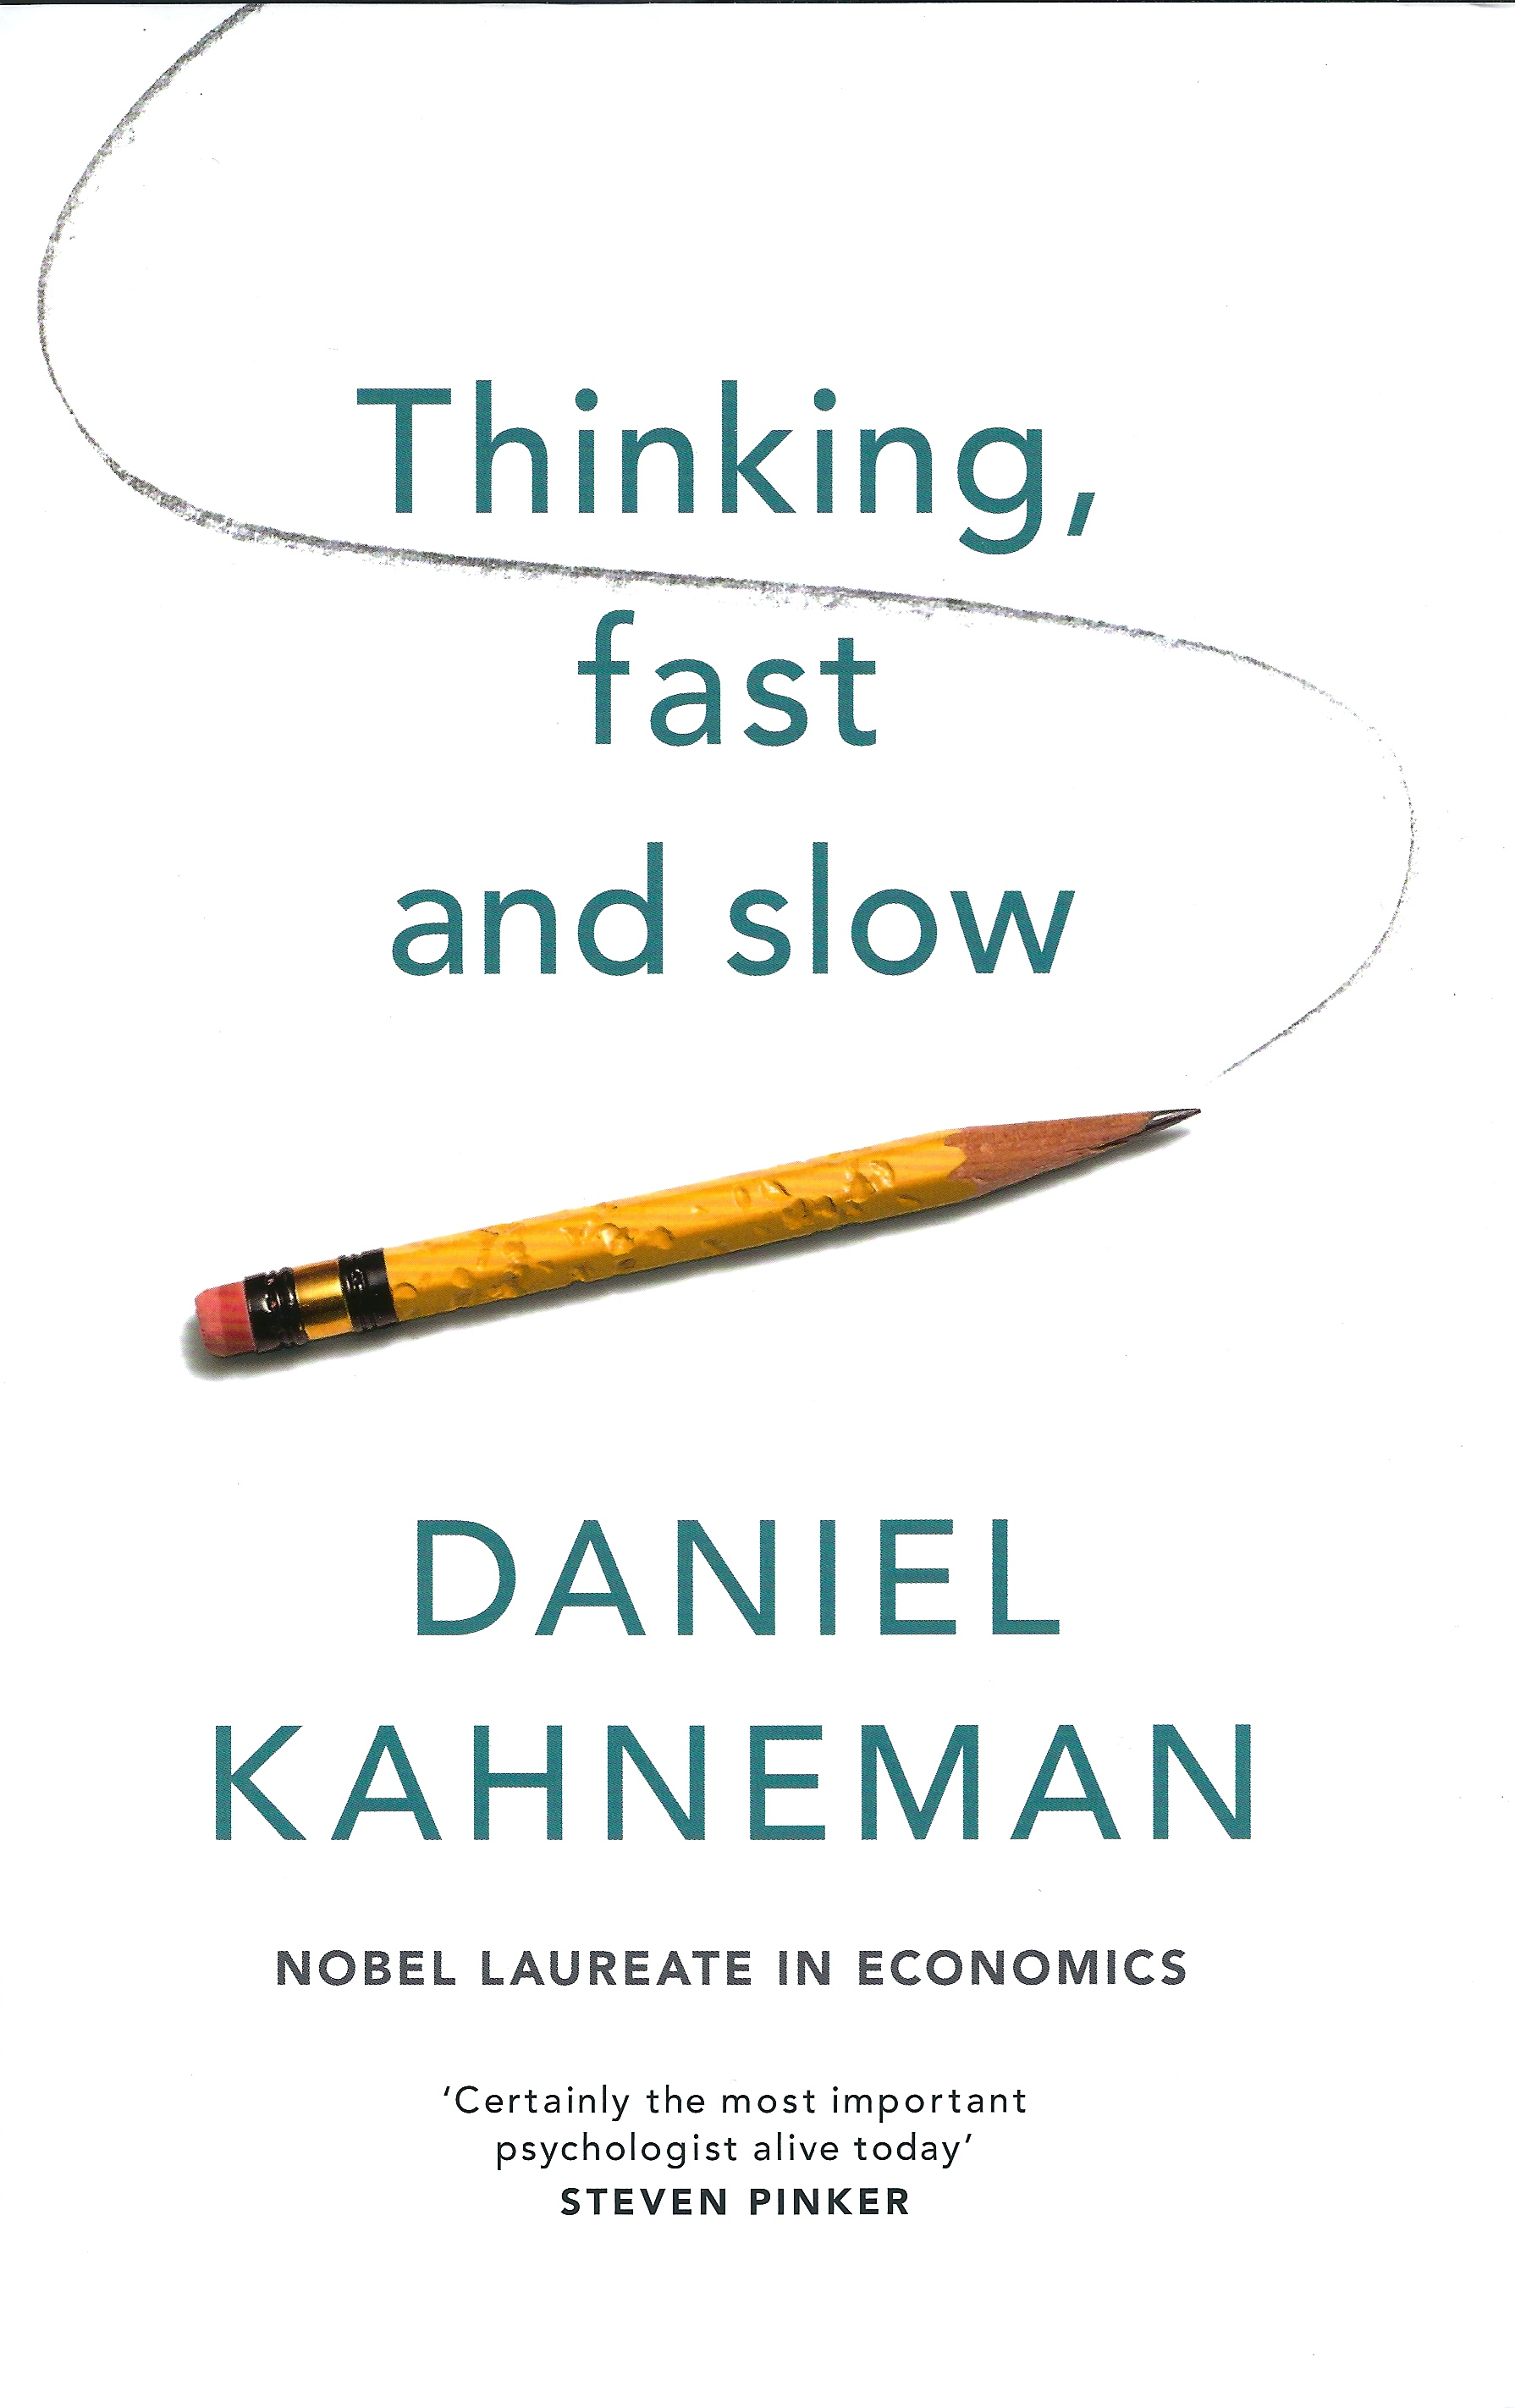 Link to Book Review: Thinking Fast and Slow by Daniel Kahneman